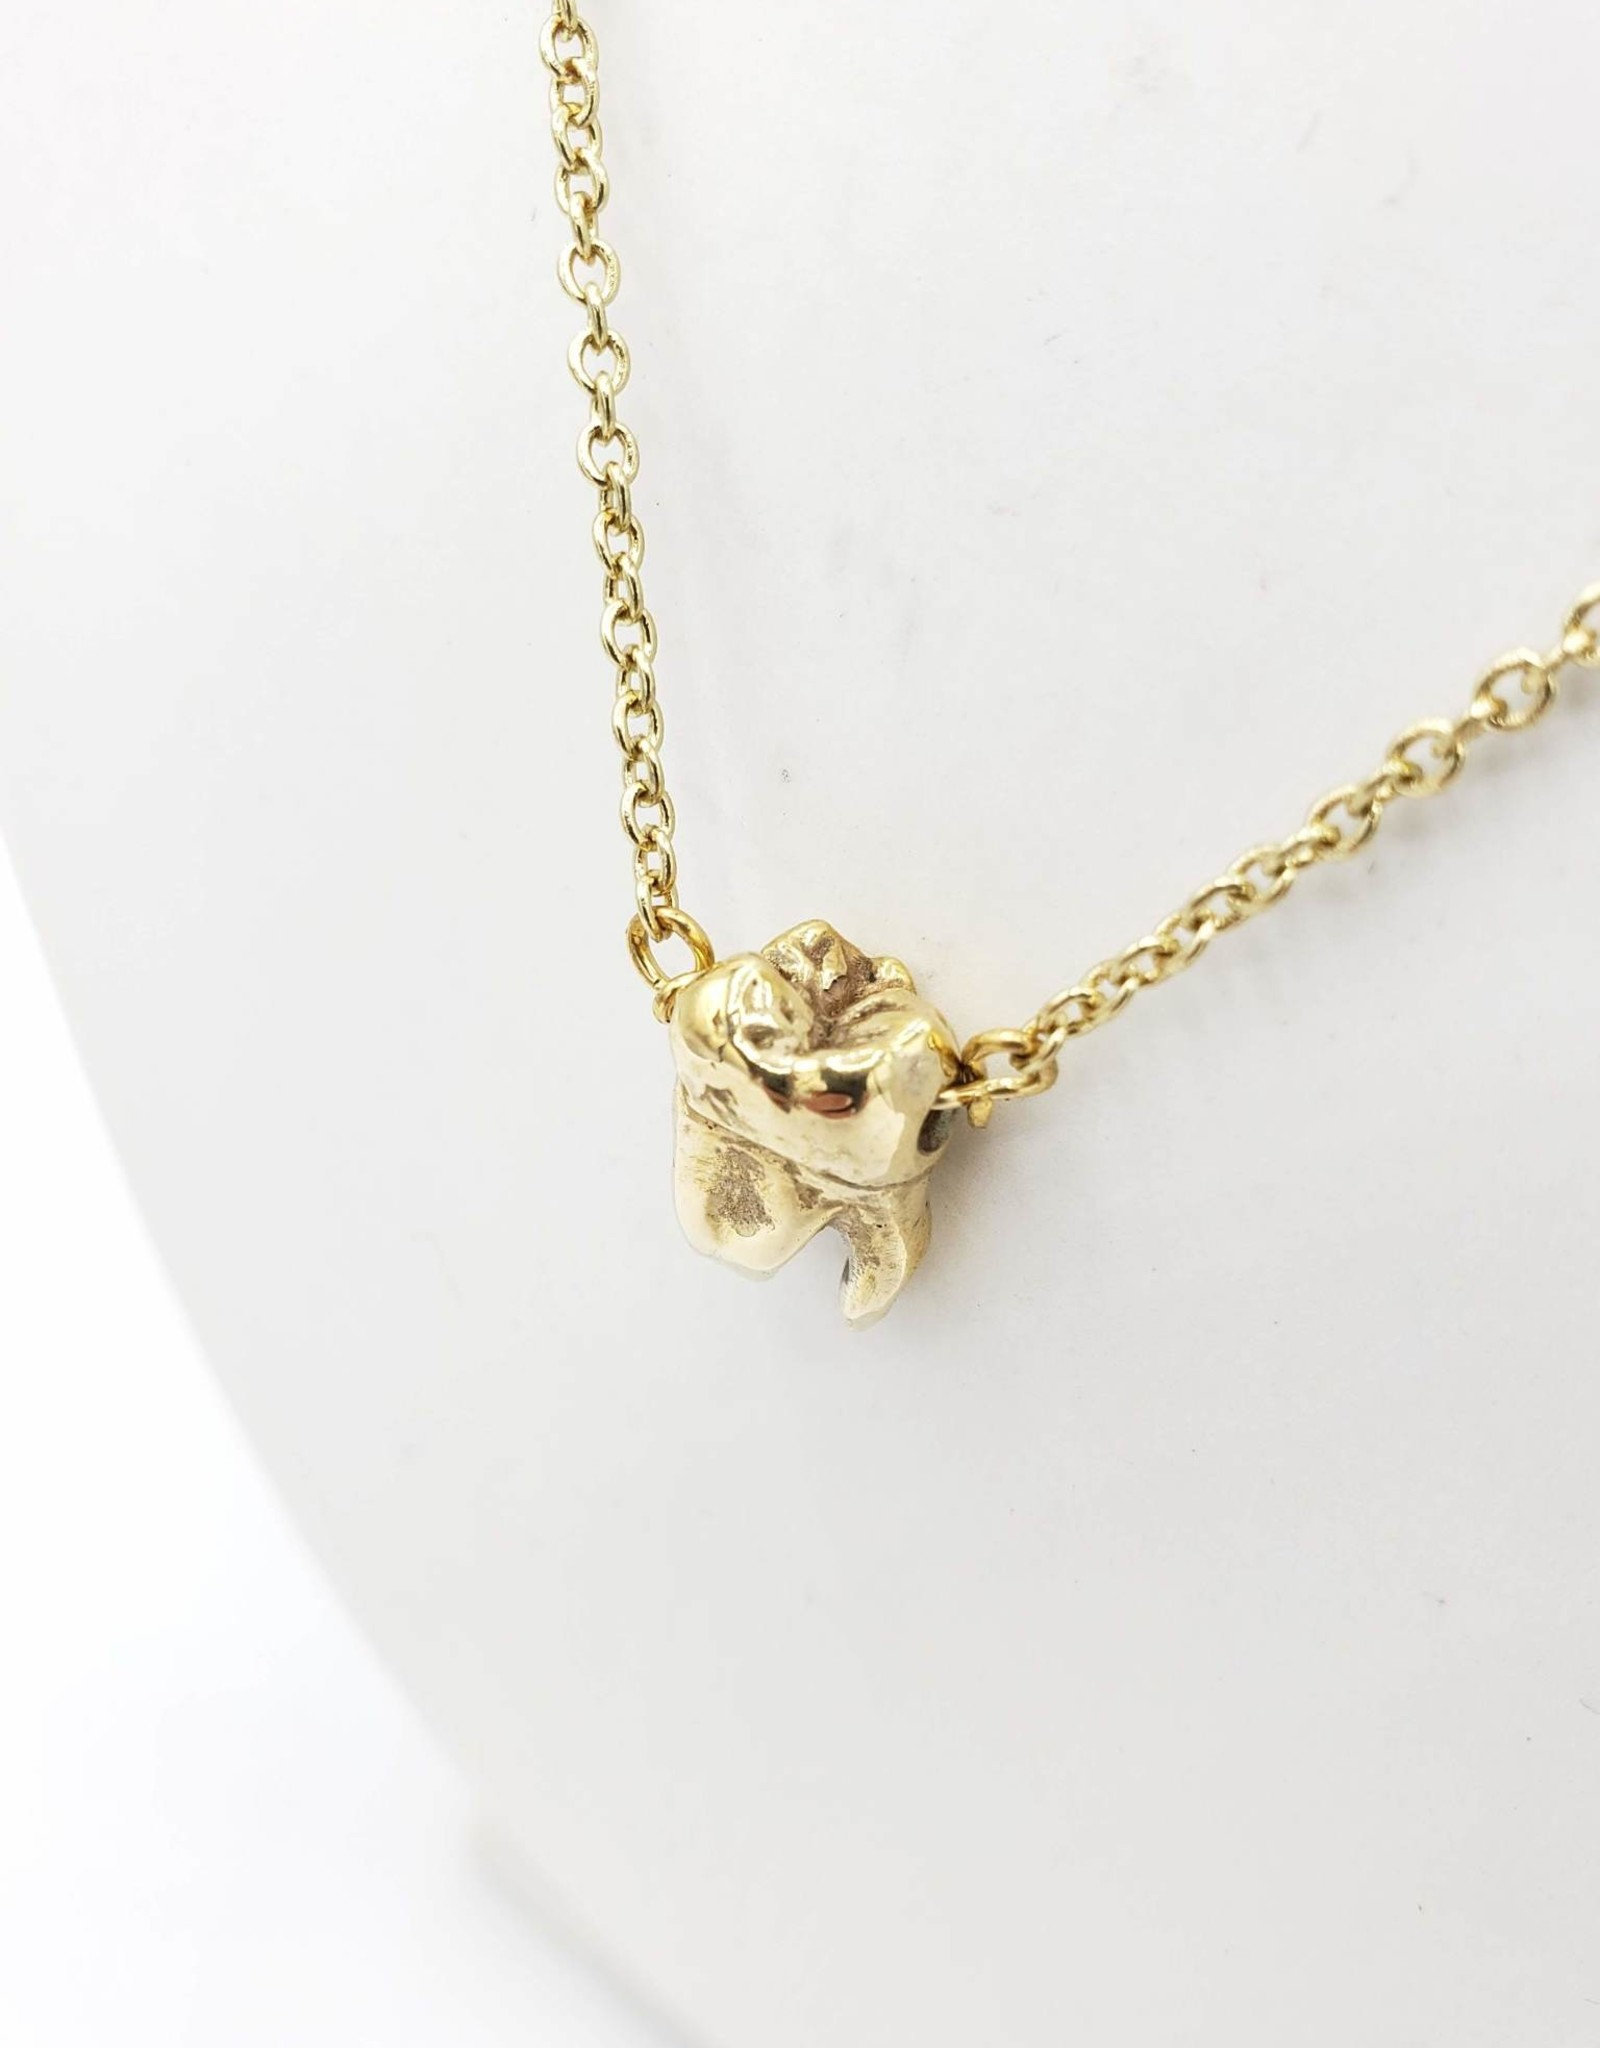 Redux Single Tooth Pendant -bronze - triple split root, high polish gold plated chain.